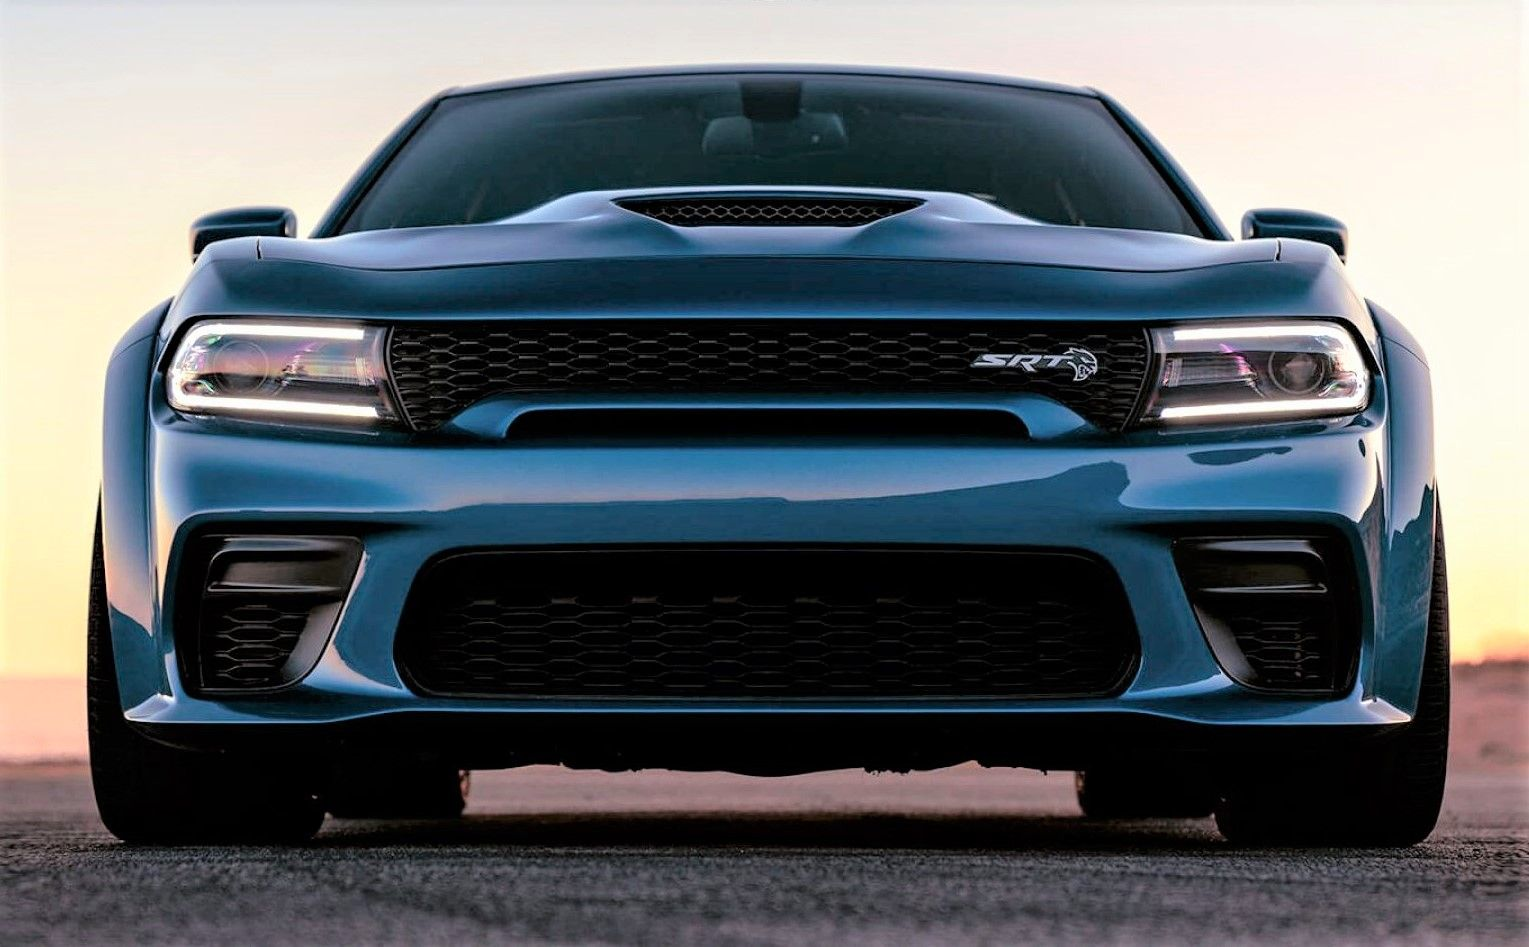 Pin On 2020 Hellcat Welcome To The Menagerie